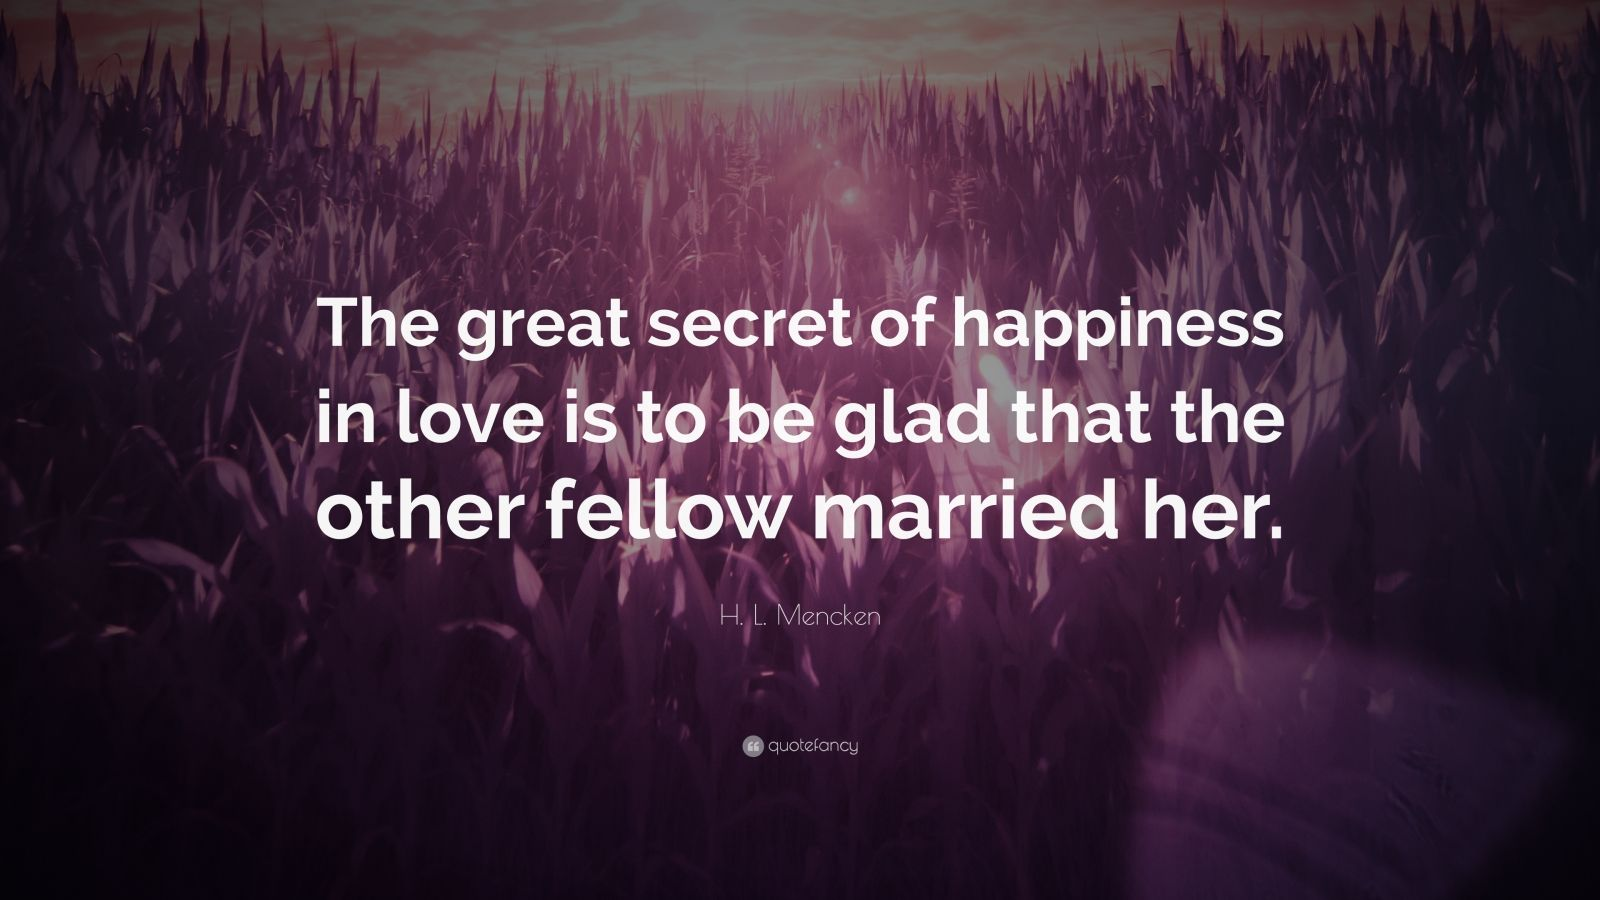 """H. L. Mencken Quote: """"The great secret of happiness in love is to be glad that the other fellow married her."""""""